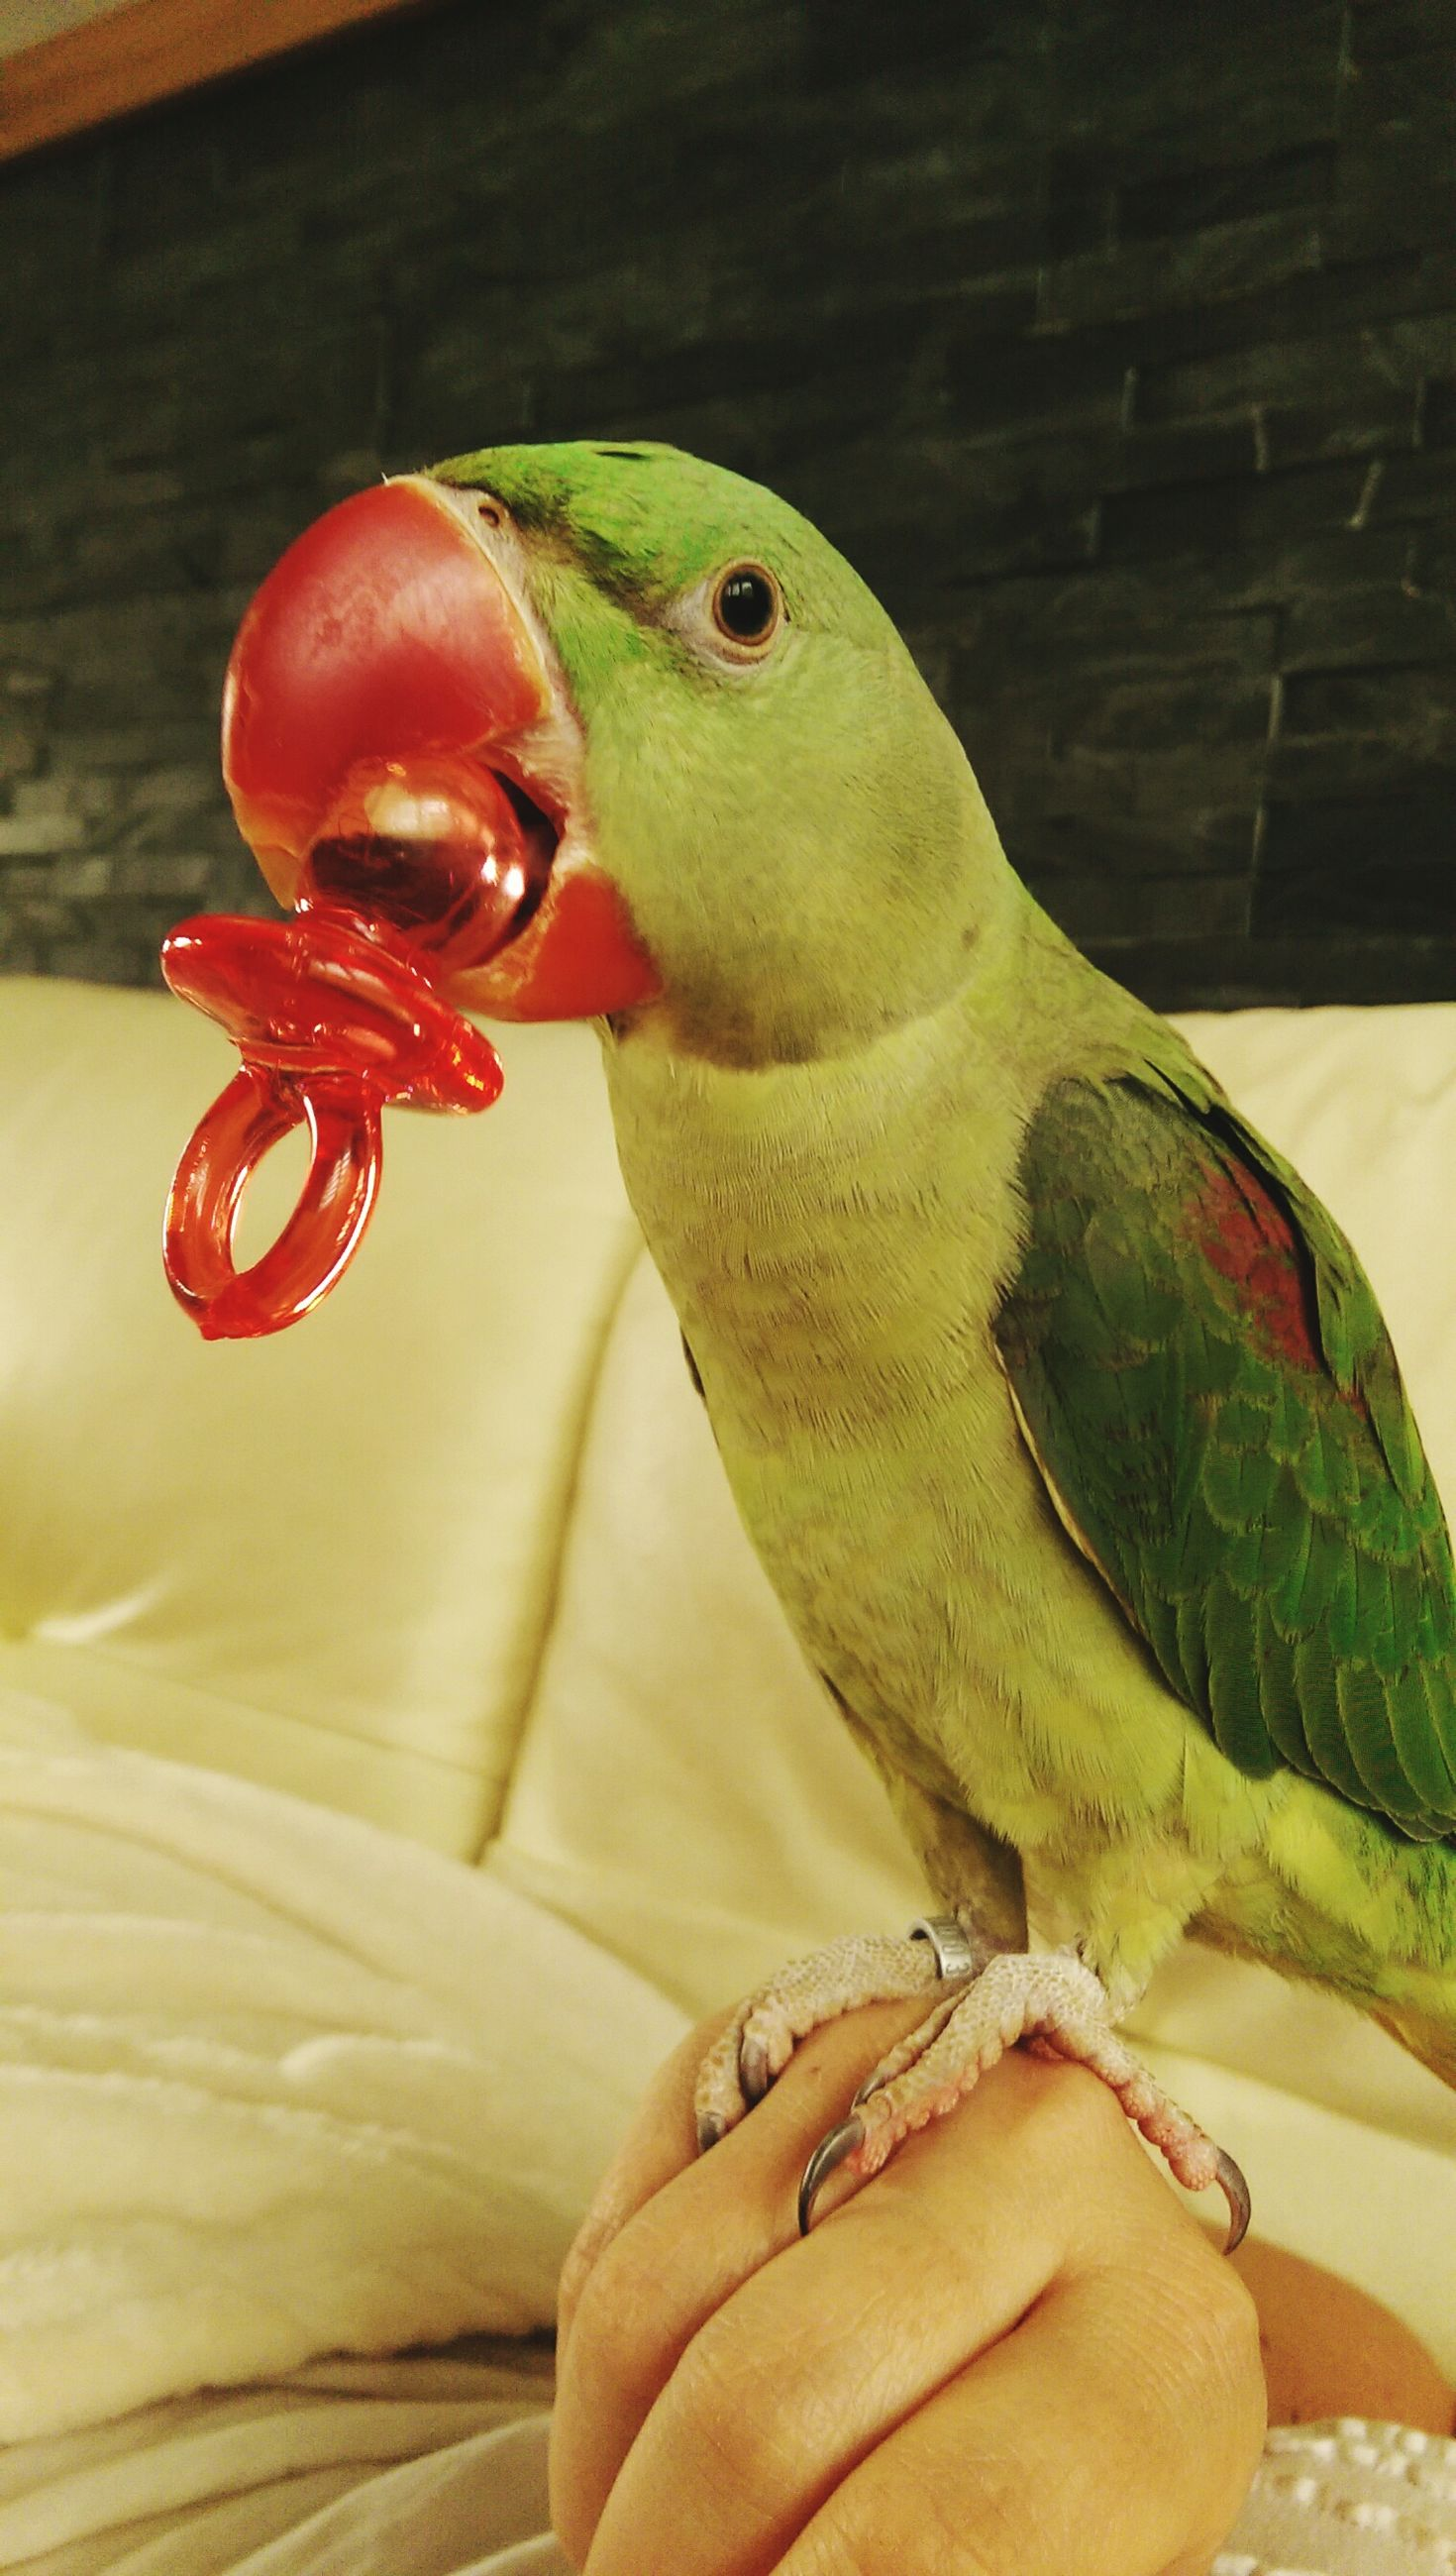 animal themes, one animal, indoors, animals in the wild, wildlife, person, close-up, holding, part of, animal representation, animal head, reptile, side view, focus on foreground, parrot, bird, lifestyles